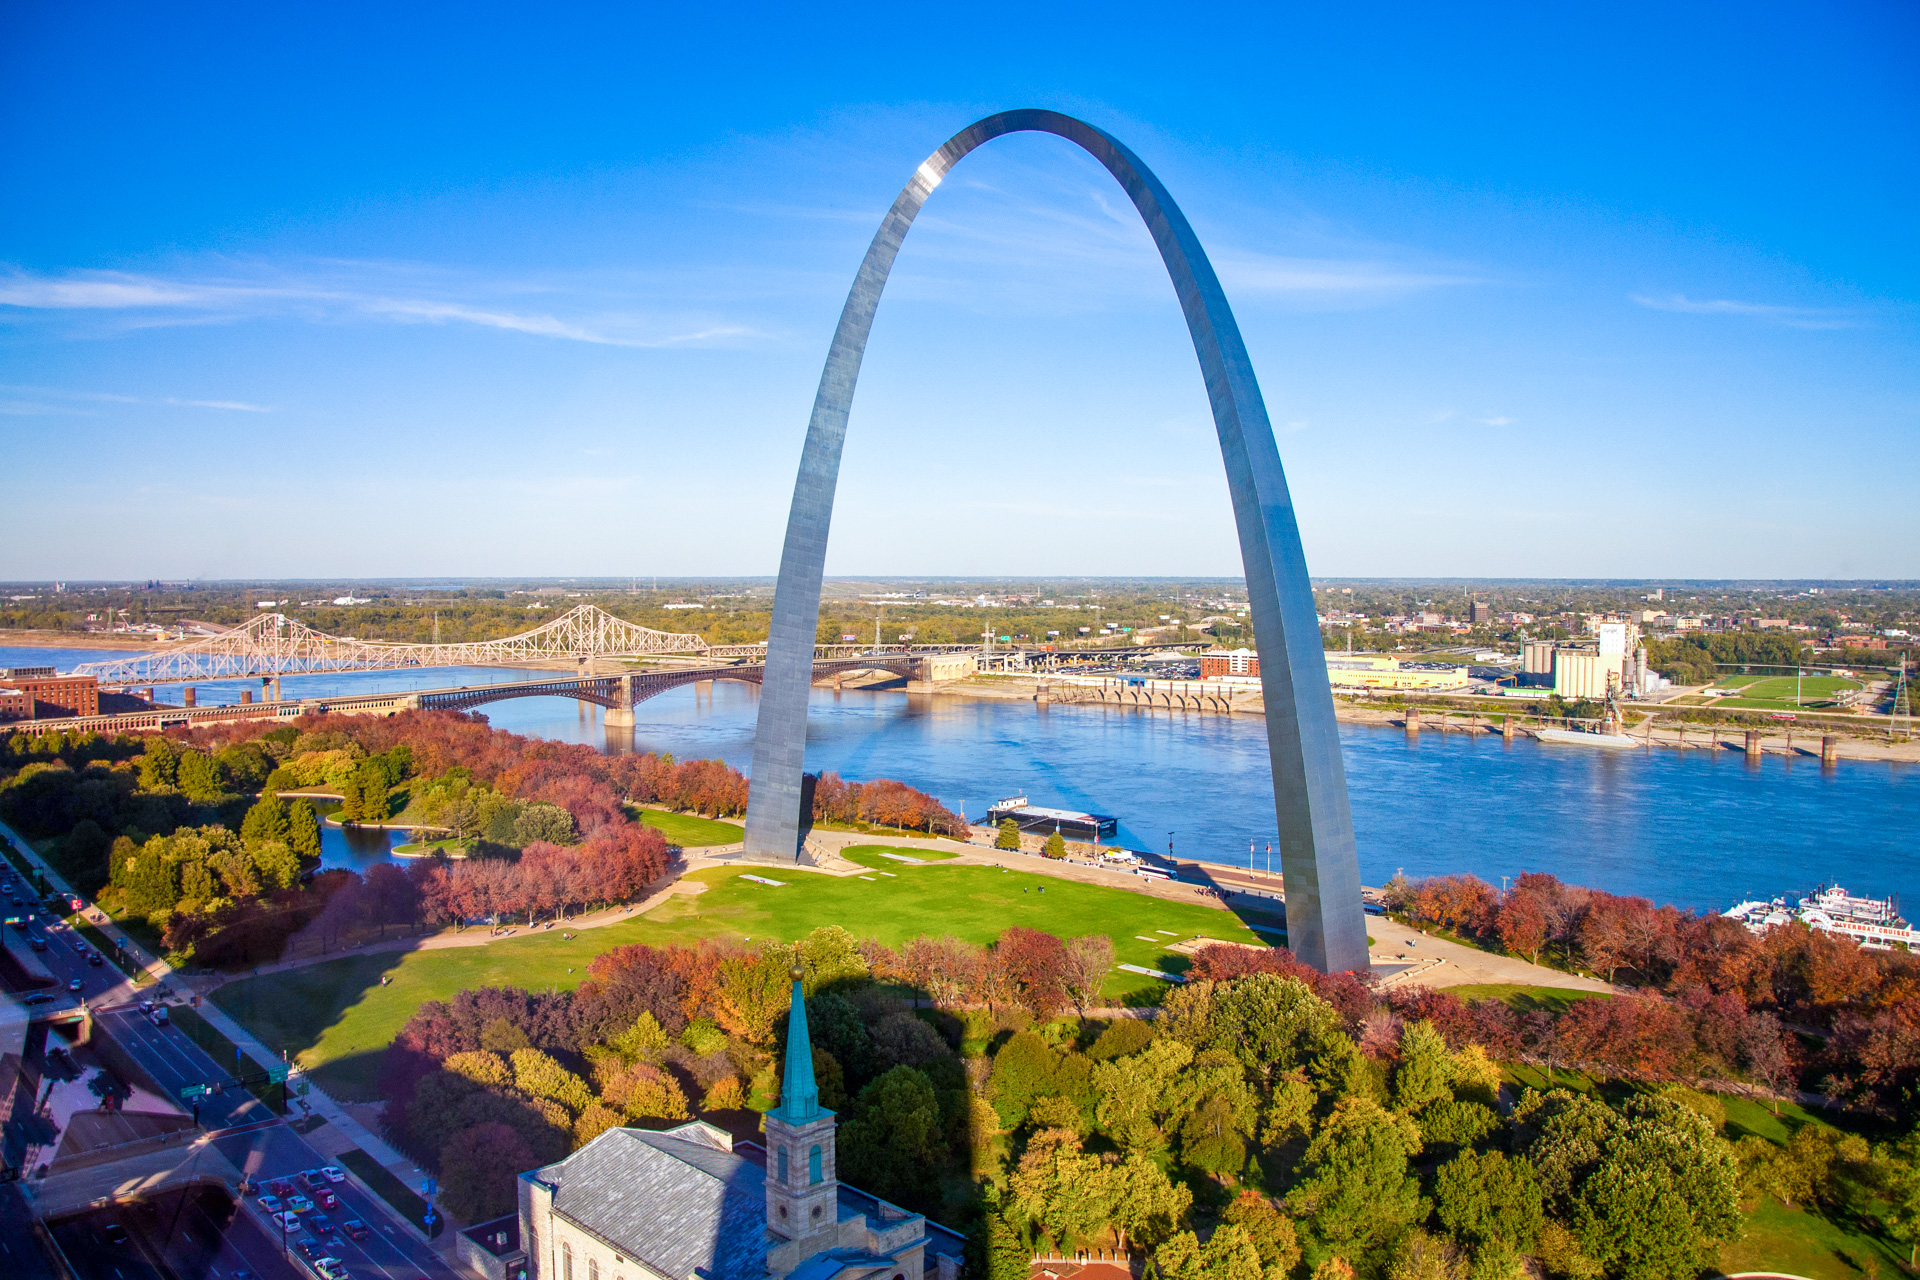 St. Louis Arch; Courtesy by amolson7/Shutterstock.com